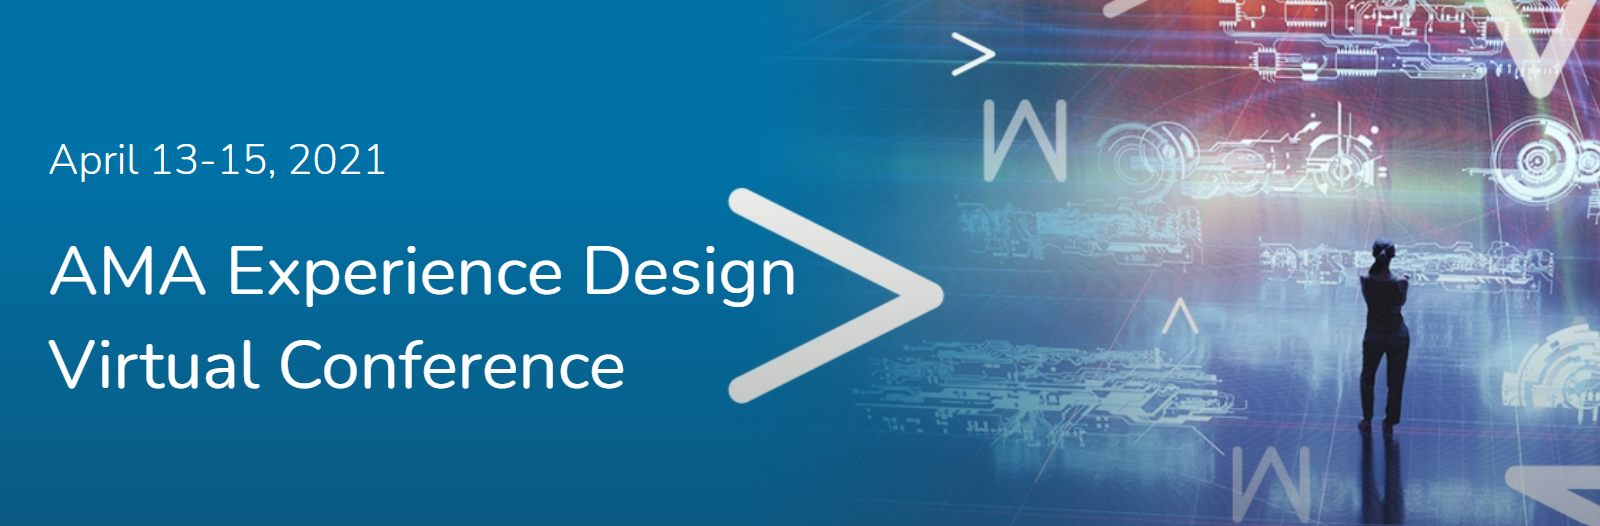 AMA Experience Design Virtual Conference